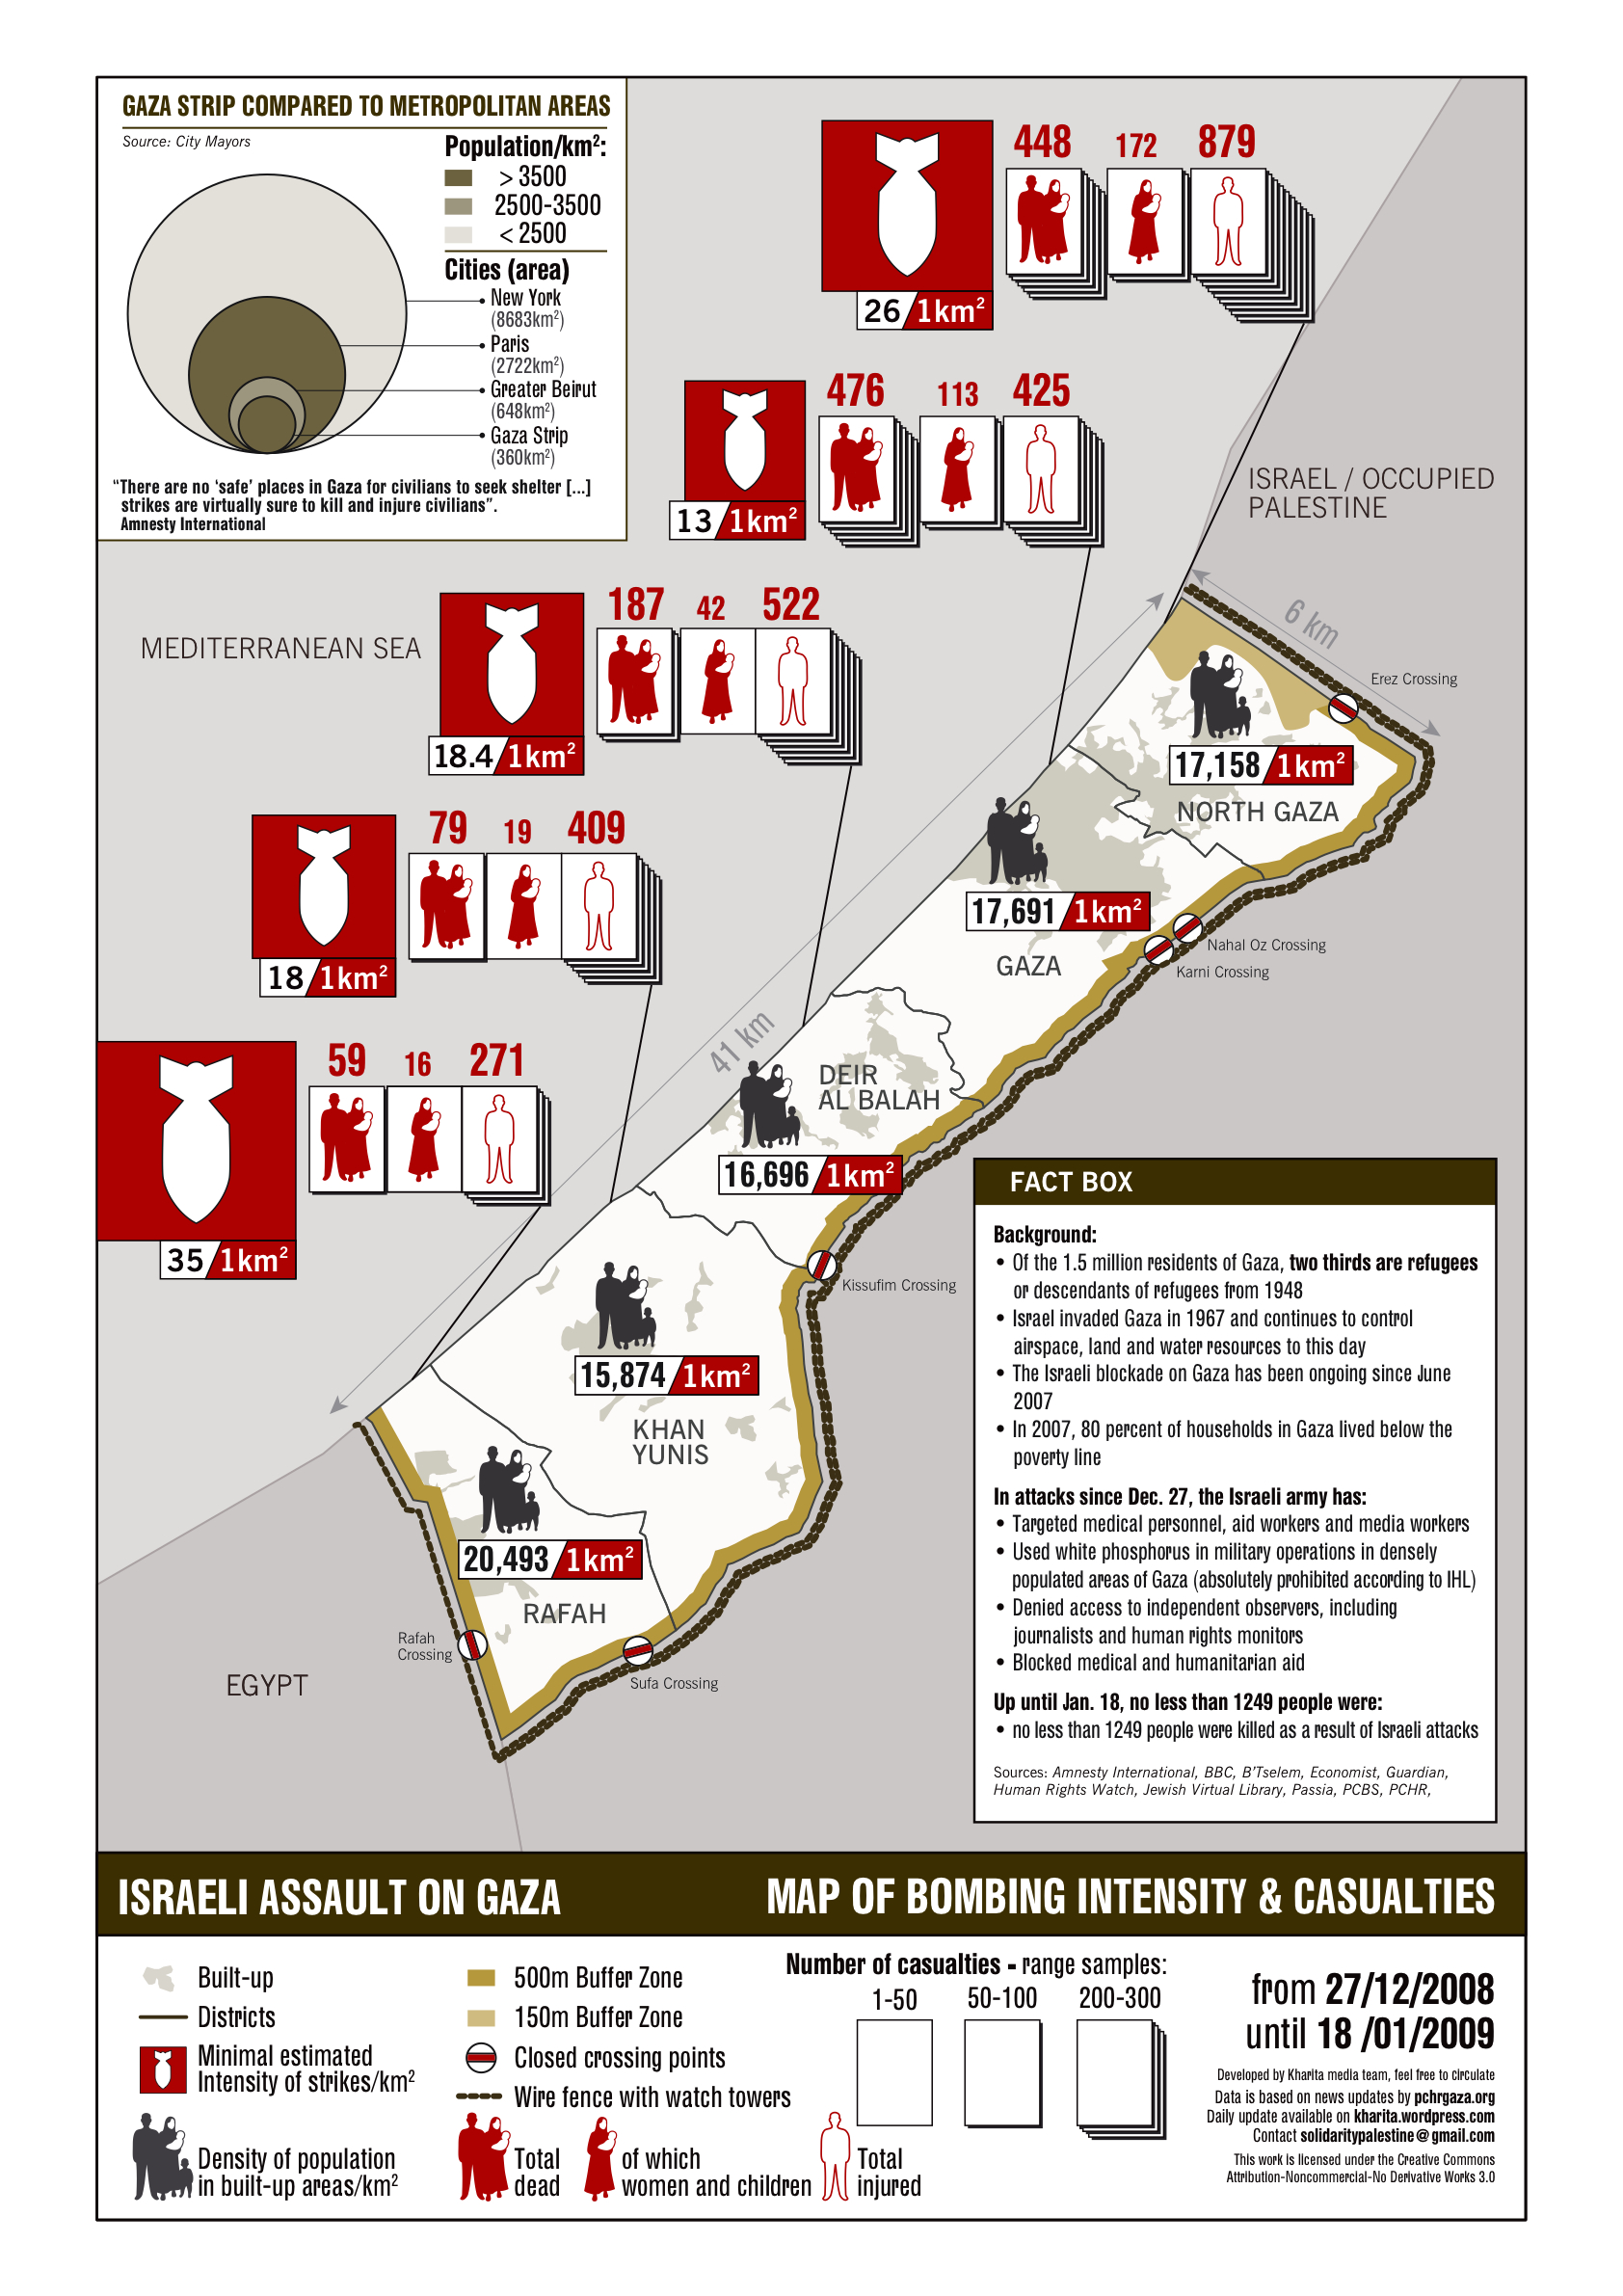 Gaza Map of Bombing Intensity &amp; Casualties, Dec 27-Jan 18, 2009